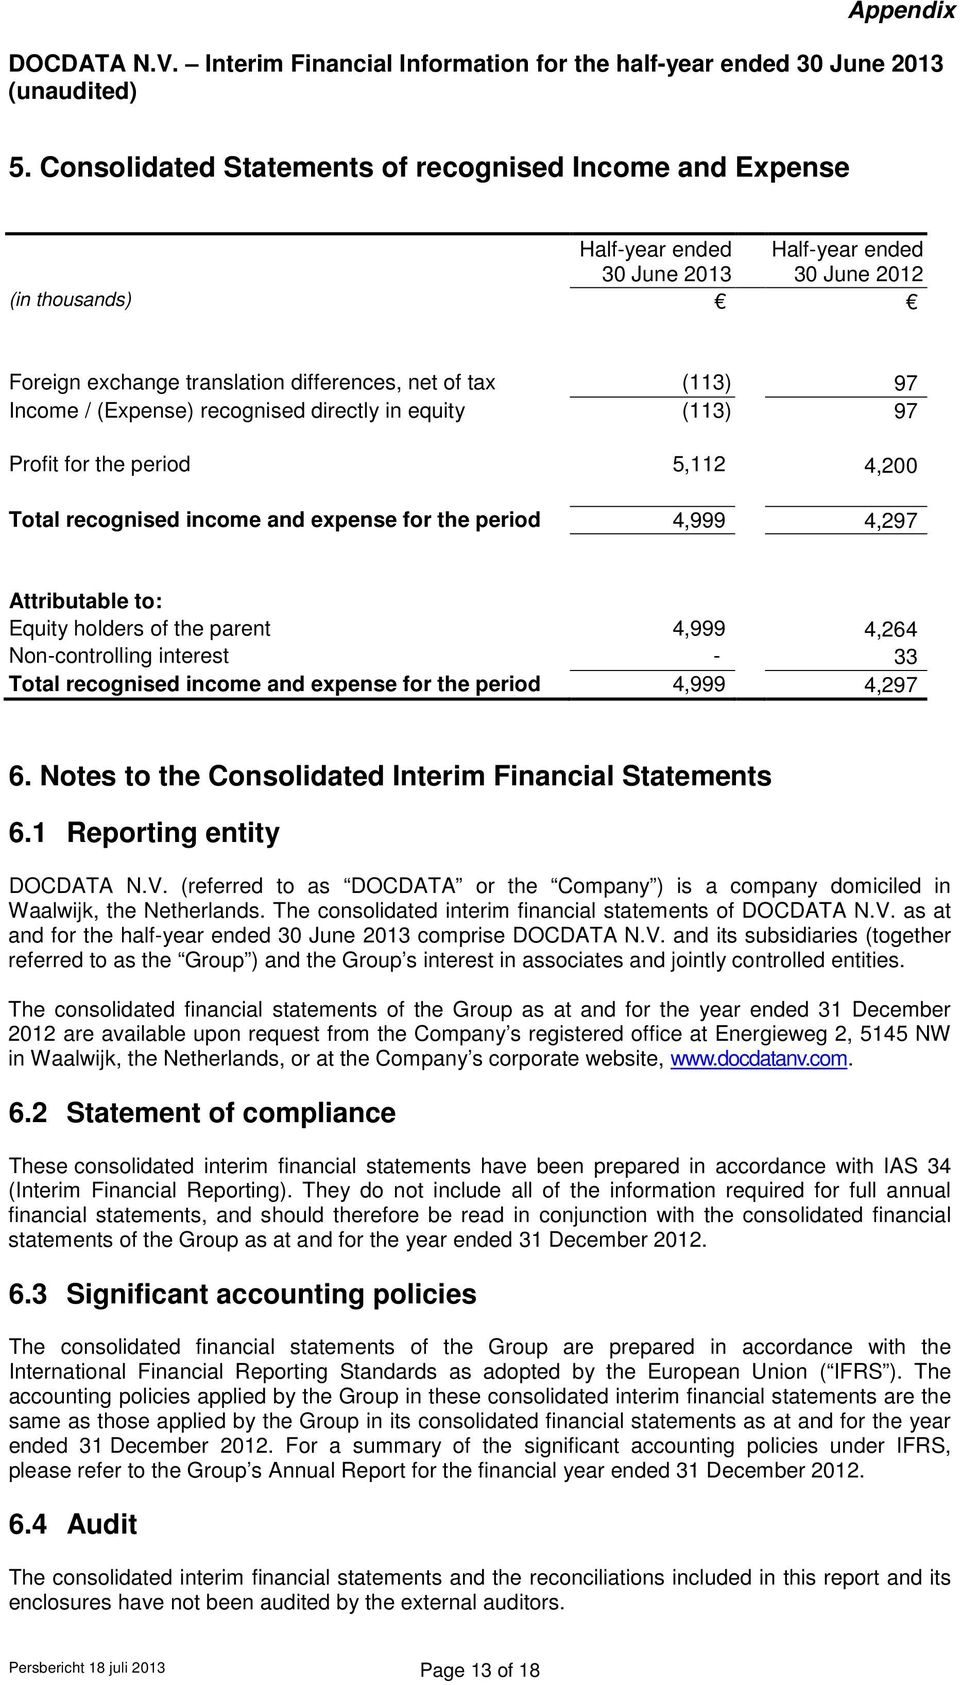 parent 4,999 4,264 Non-controlling interest - 33 Total recognised income and expense for the period 4,999 4,297 6. Notes to the Consolidated Interim Financial Statements 6.